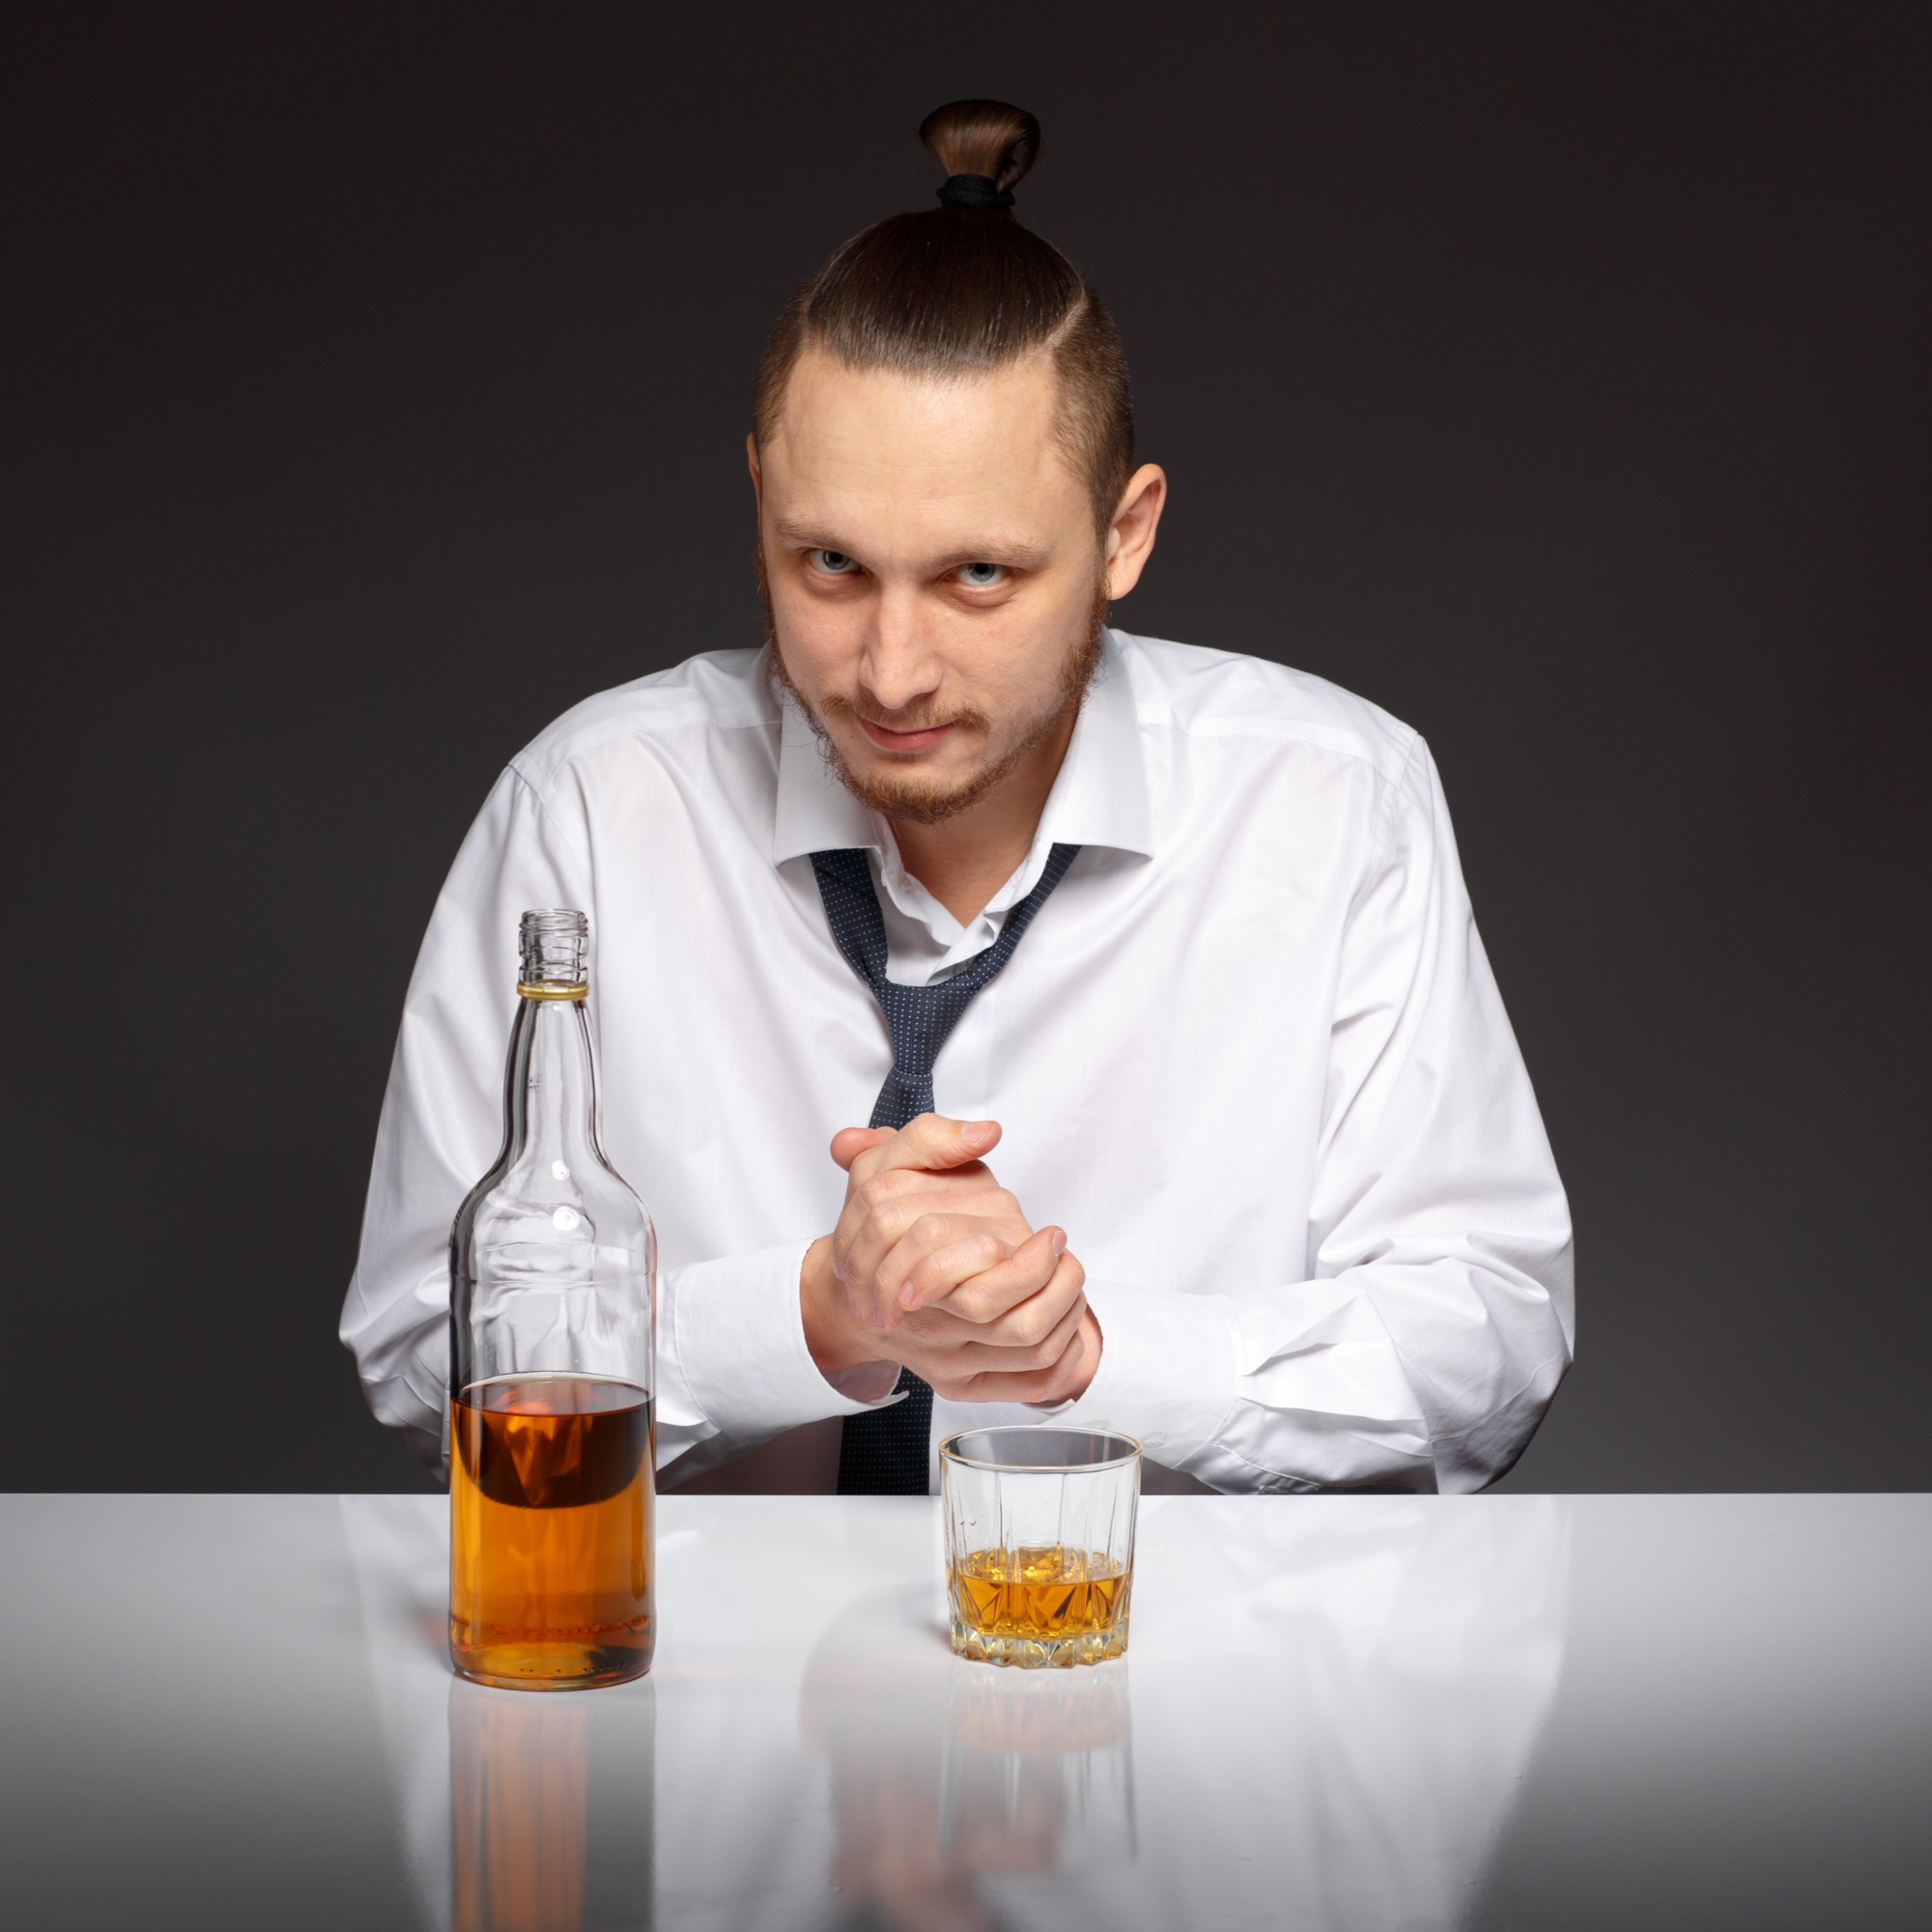 Pensive businessman with a bottle of alcohol on the table